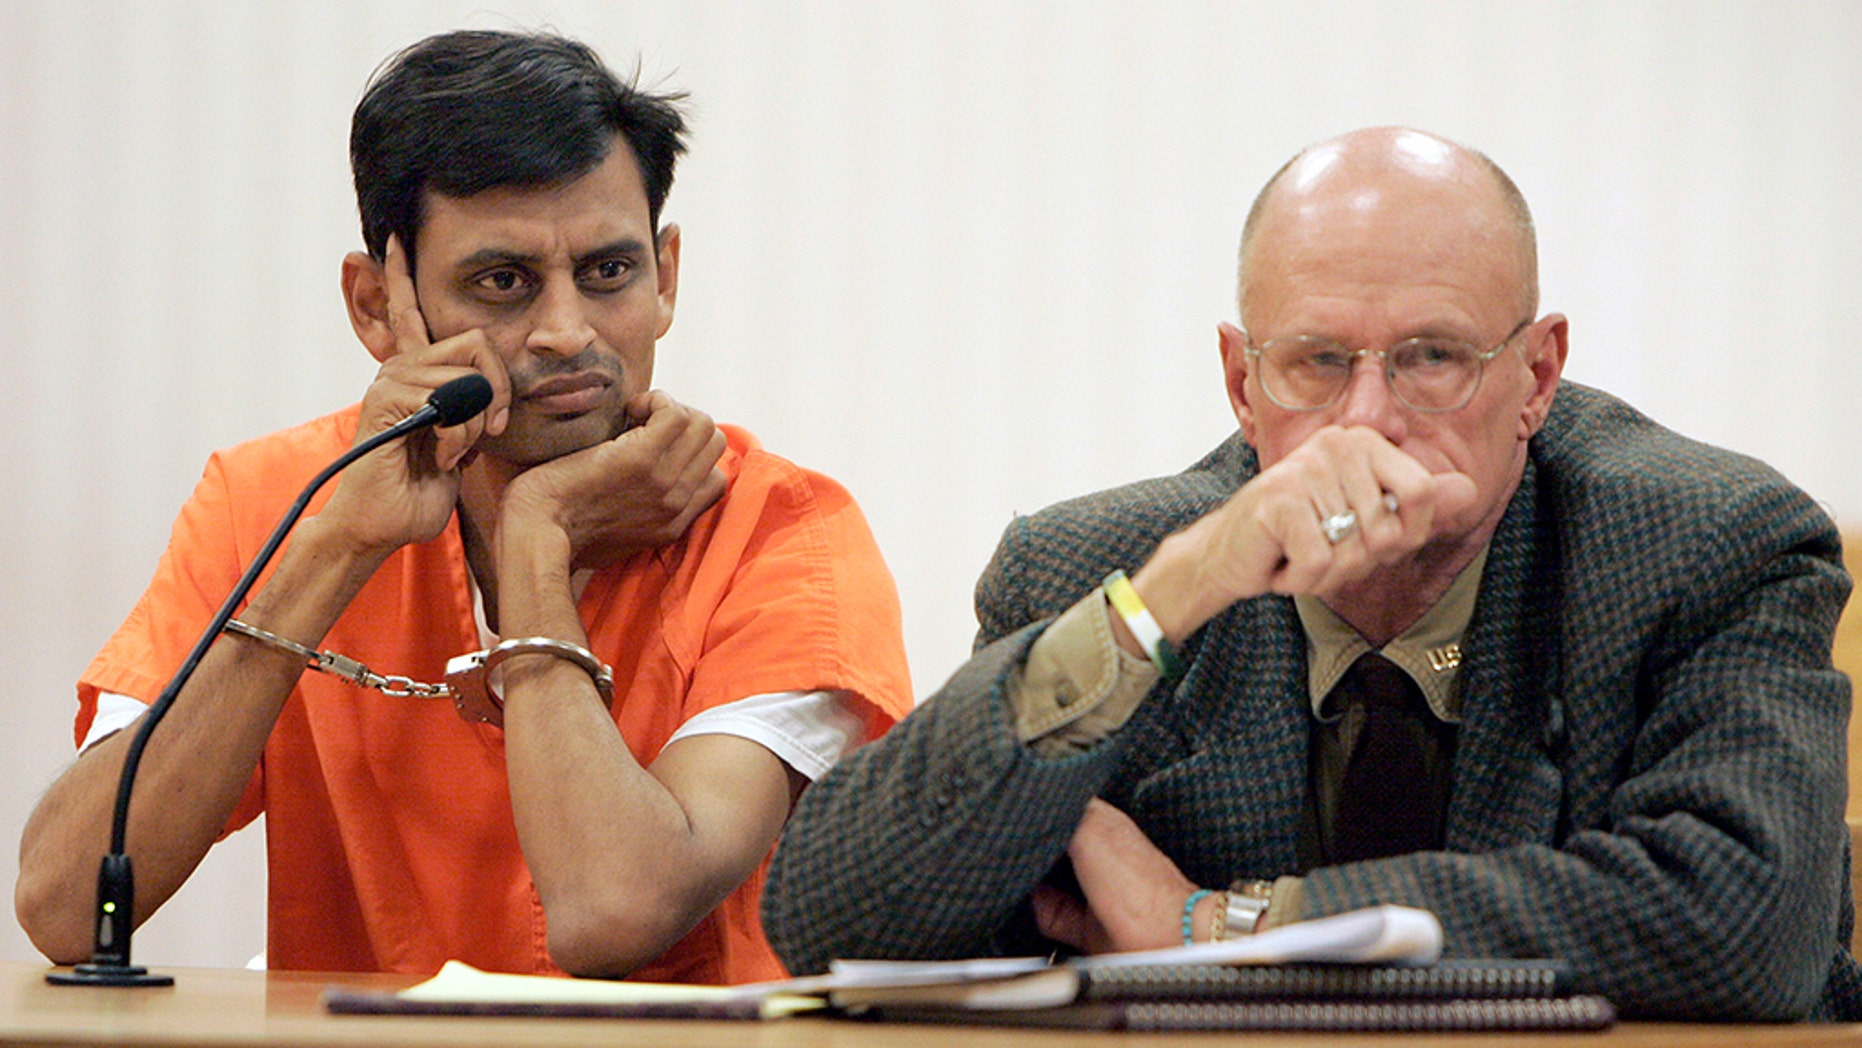 Manishkumar Patel, left, sits with his attorney during his initial court appearance at the Outagamie County Justice Center in Appleton, Wis., Nov. 29, 2007.